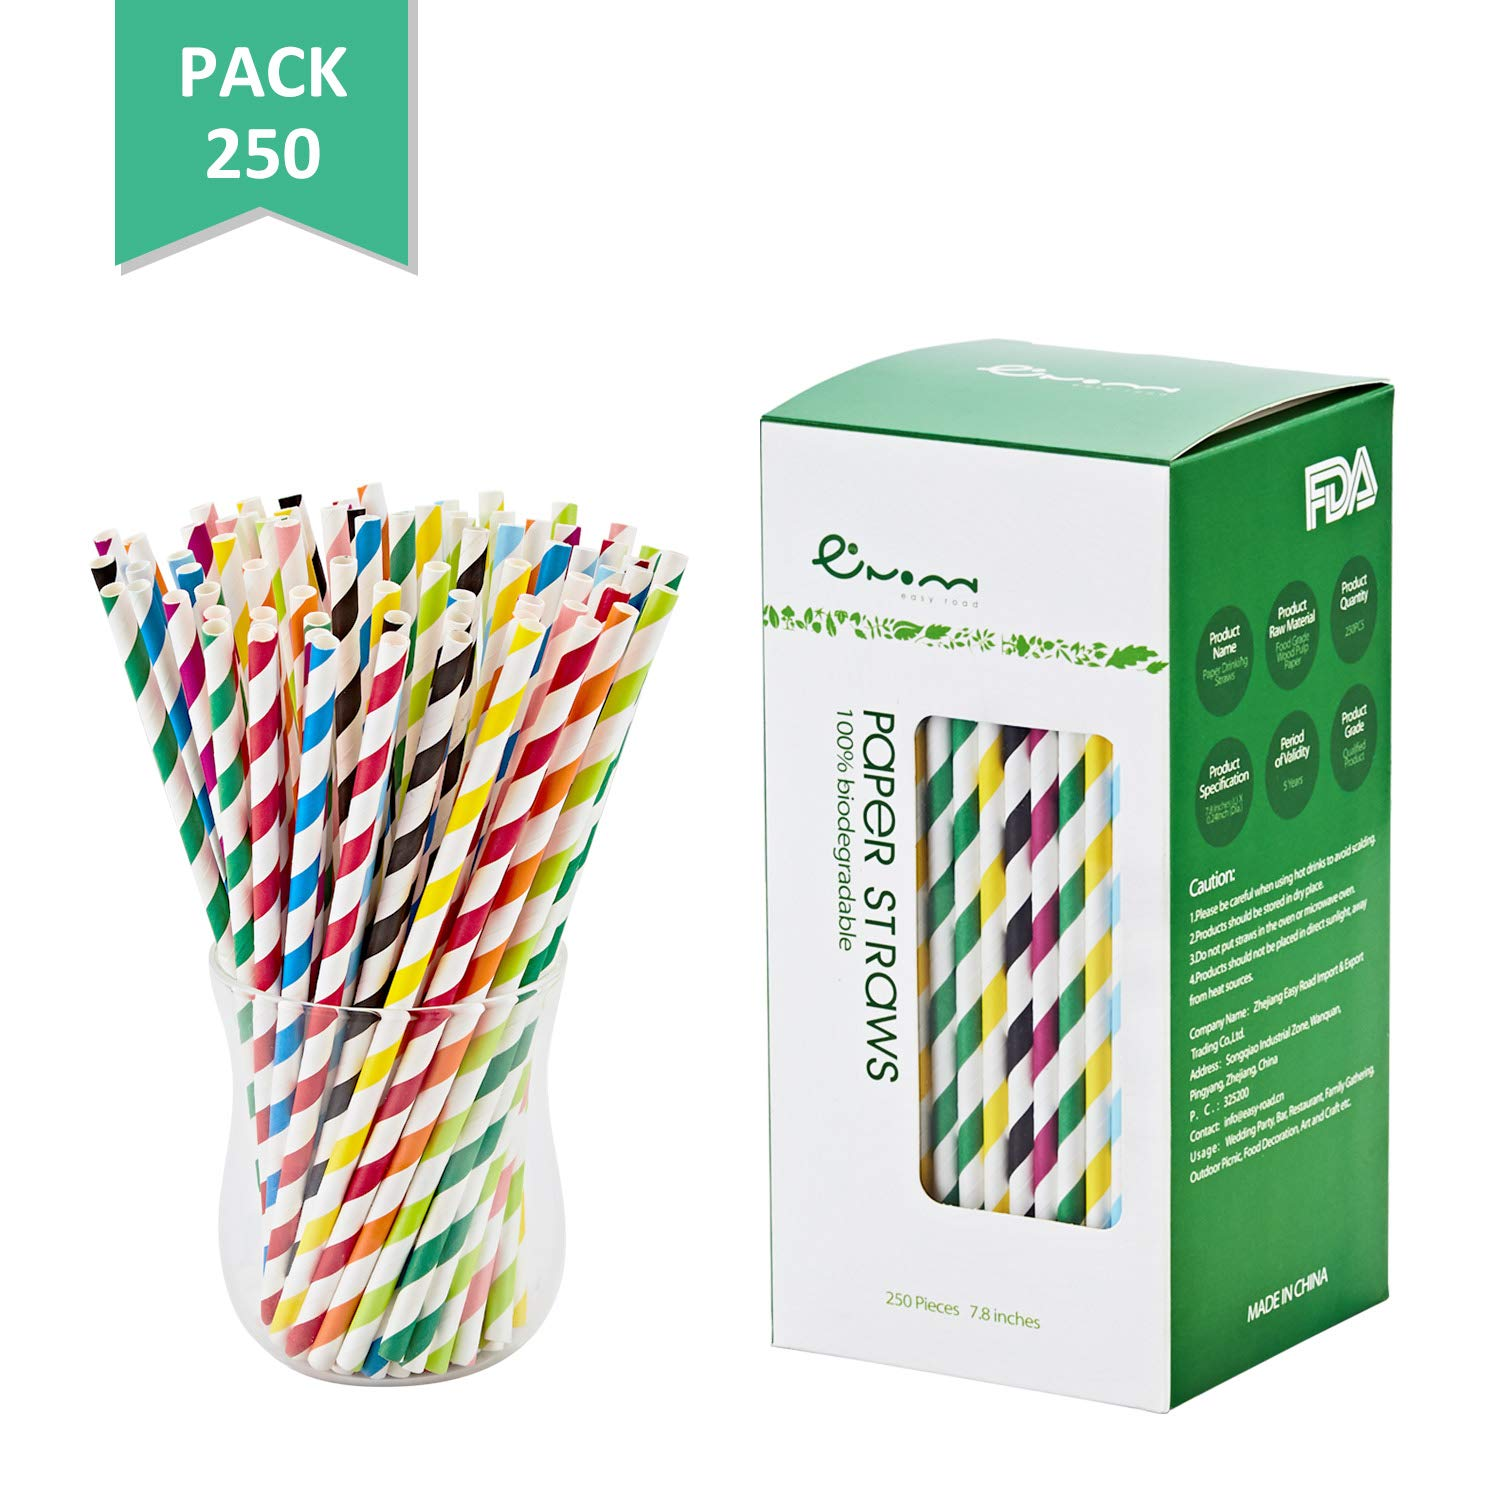 EASY ROAD 250-Pack Biodegradable Paper Straws Bulk - 10 Different Colors Rainbow Stripe Drinking Straws For Party Supplies, Birthday, Wedding, Bridal/Baby Shower Decorations, Holiday Celebrations